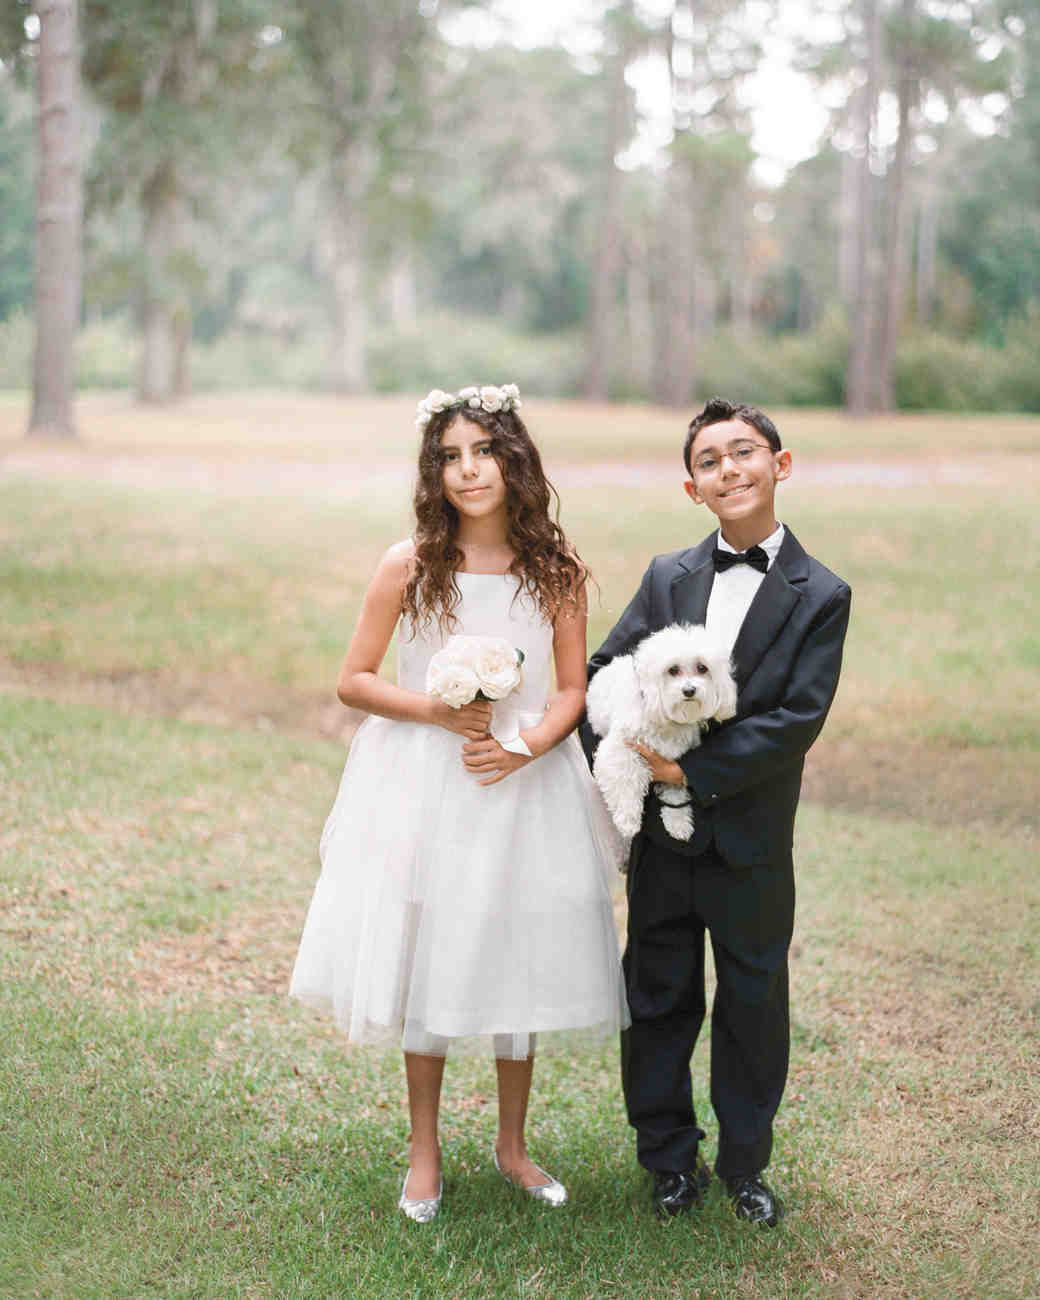 flower-girl-boy-dog-field-2013-lindsey-josh-0843-mwds110860.jpg